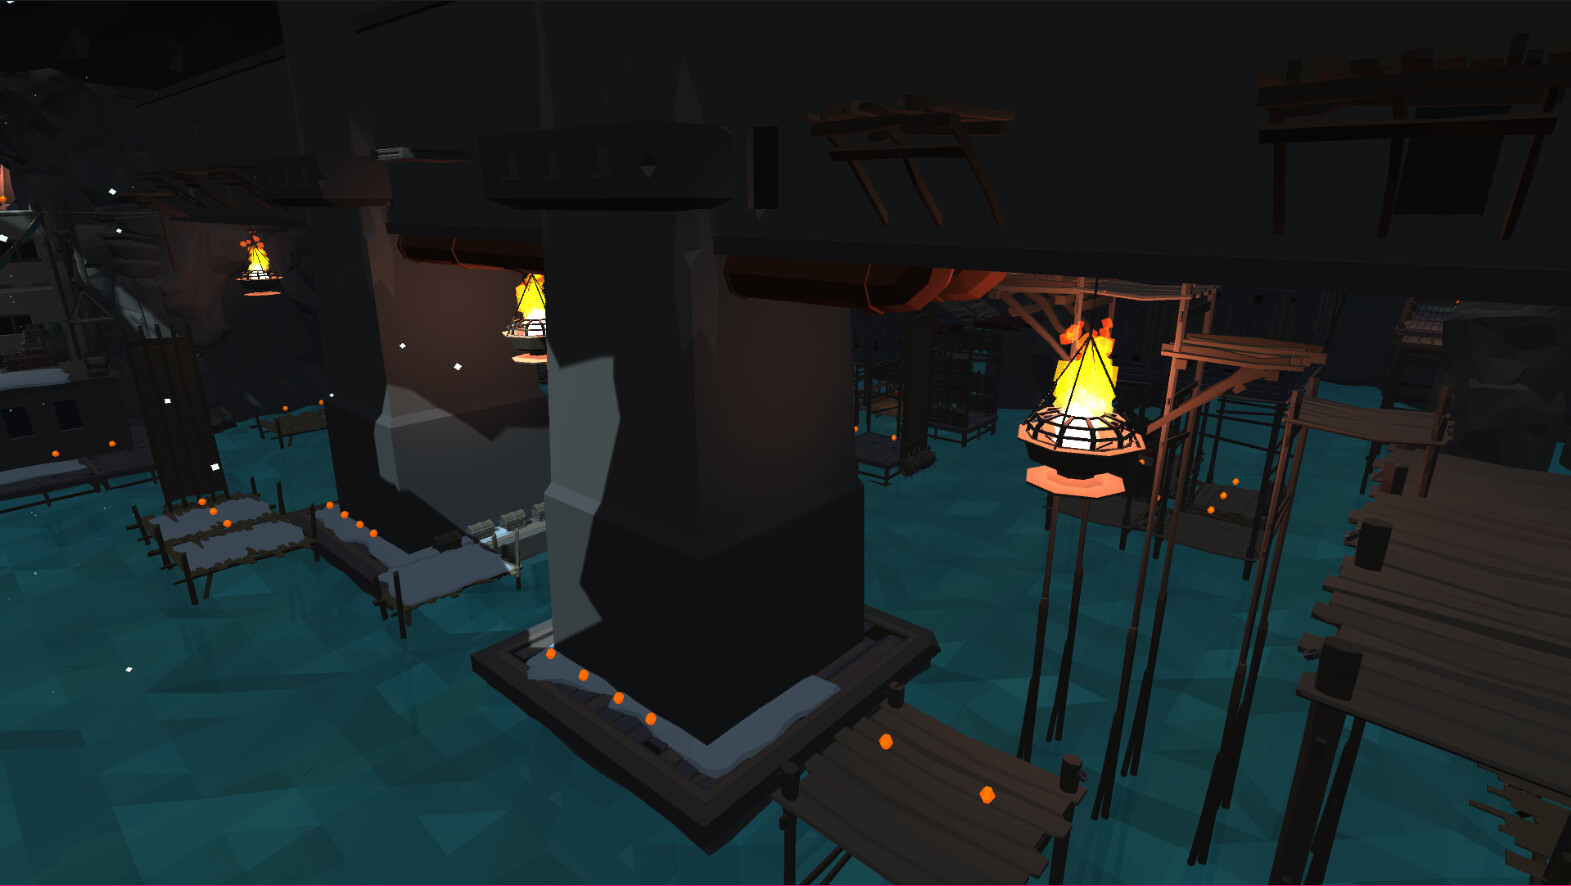 A view showcasing the central section of the cavern area of the level. The player crosses these struts at the base when returning from opening the dam access point.